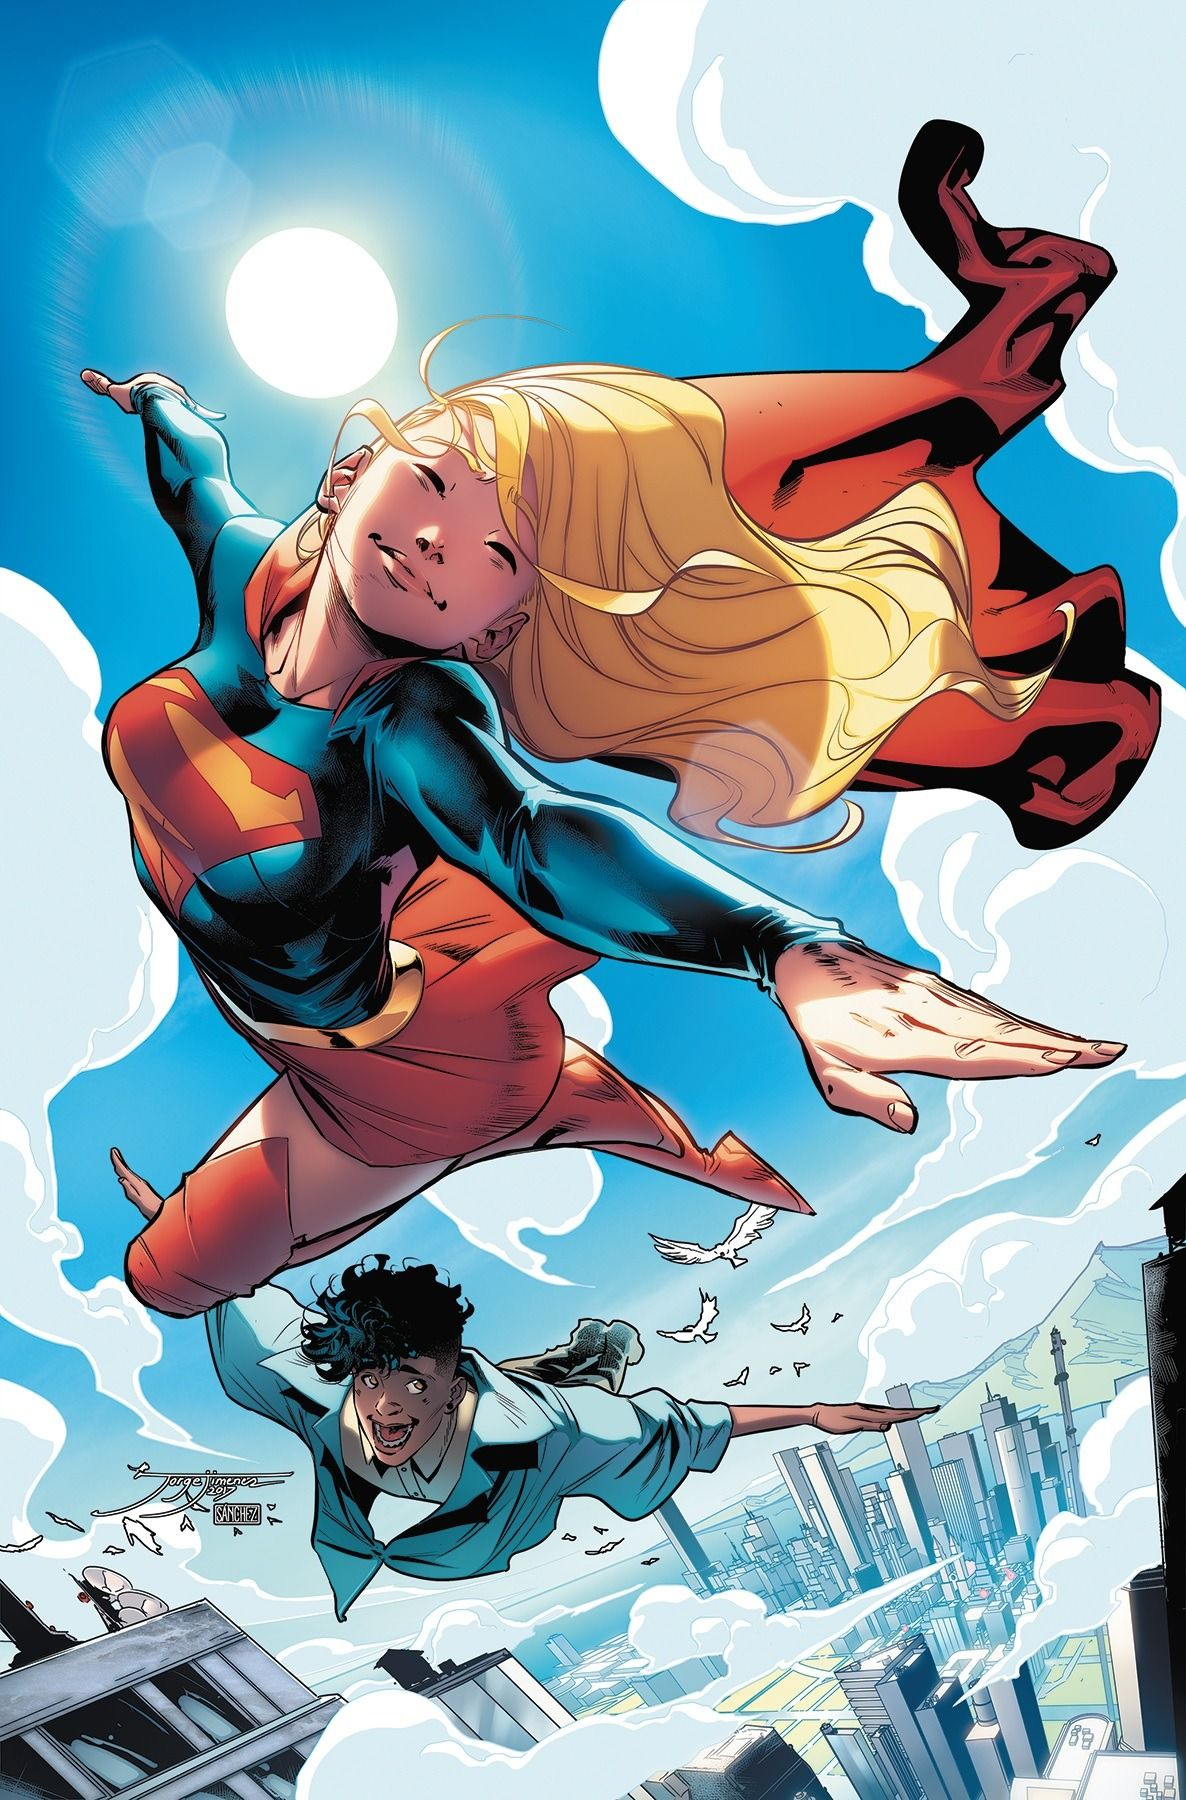 Supergirl Vol.7 #19 (Cover art by Jorge Jiménez) Marvel Dc,